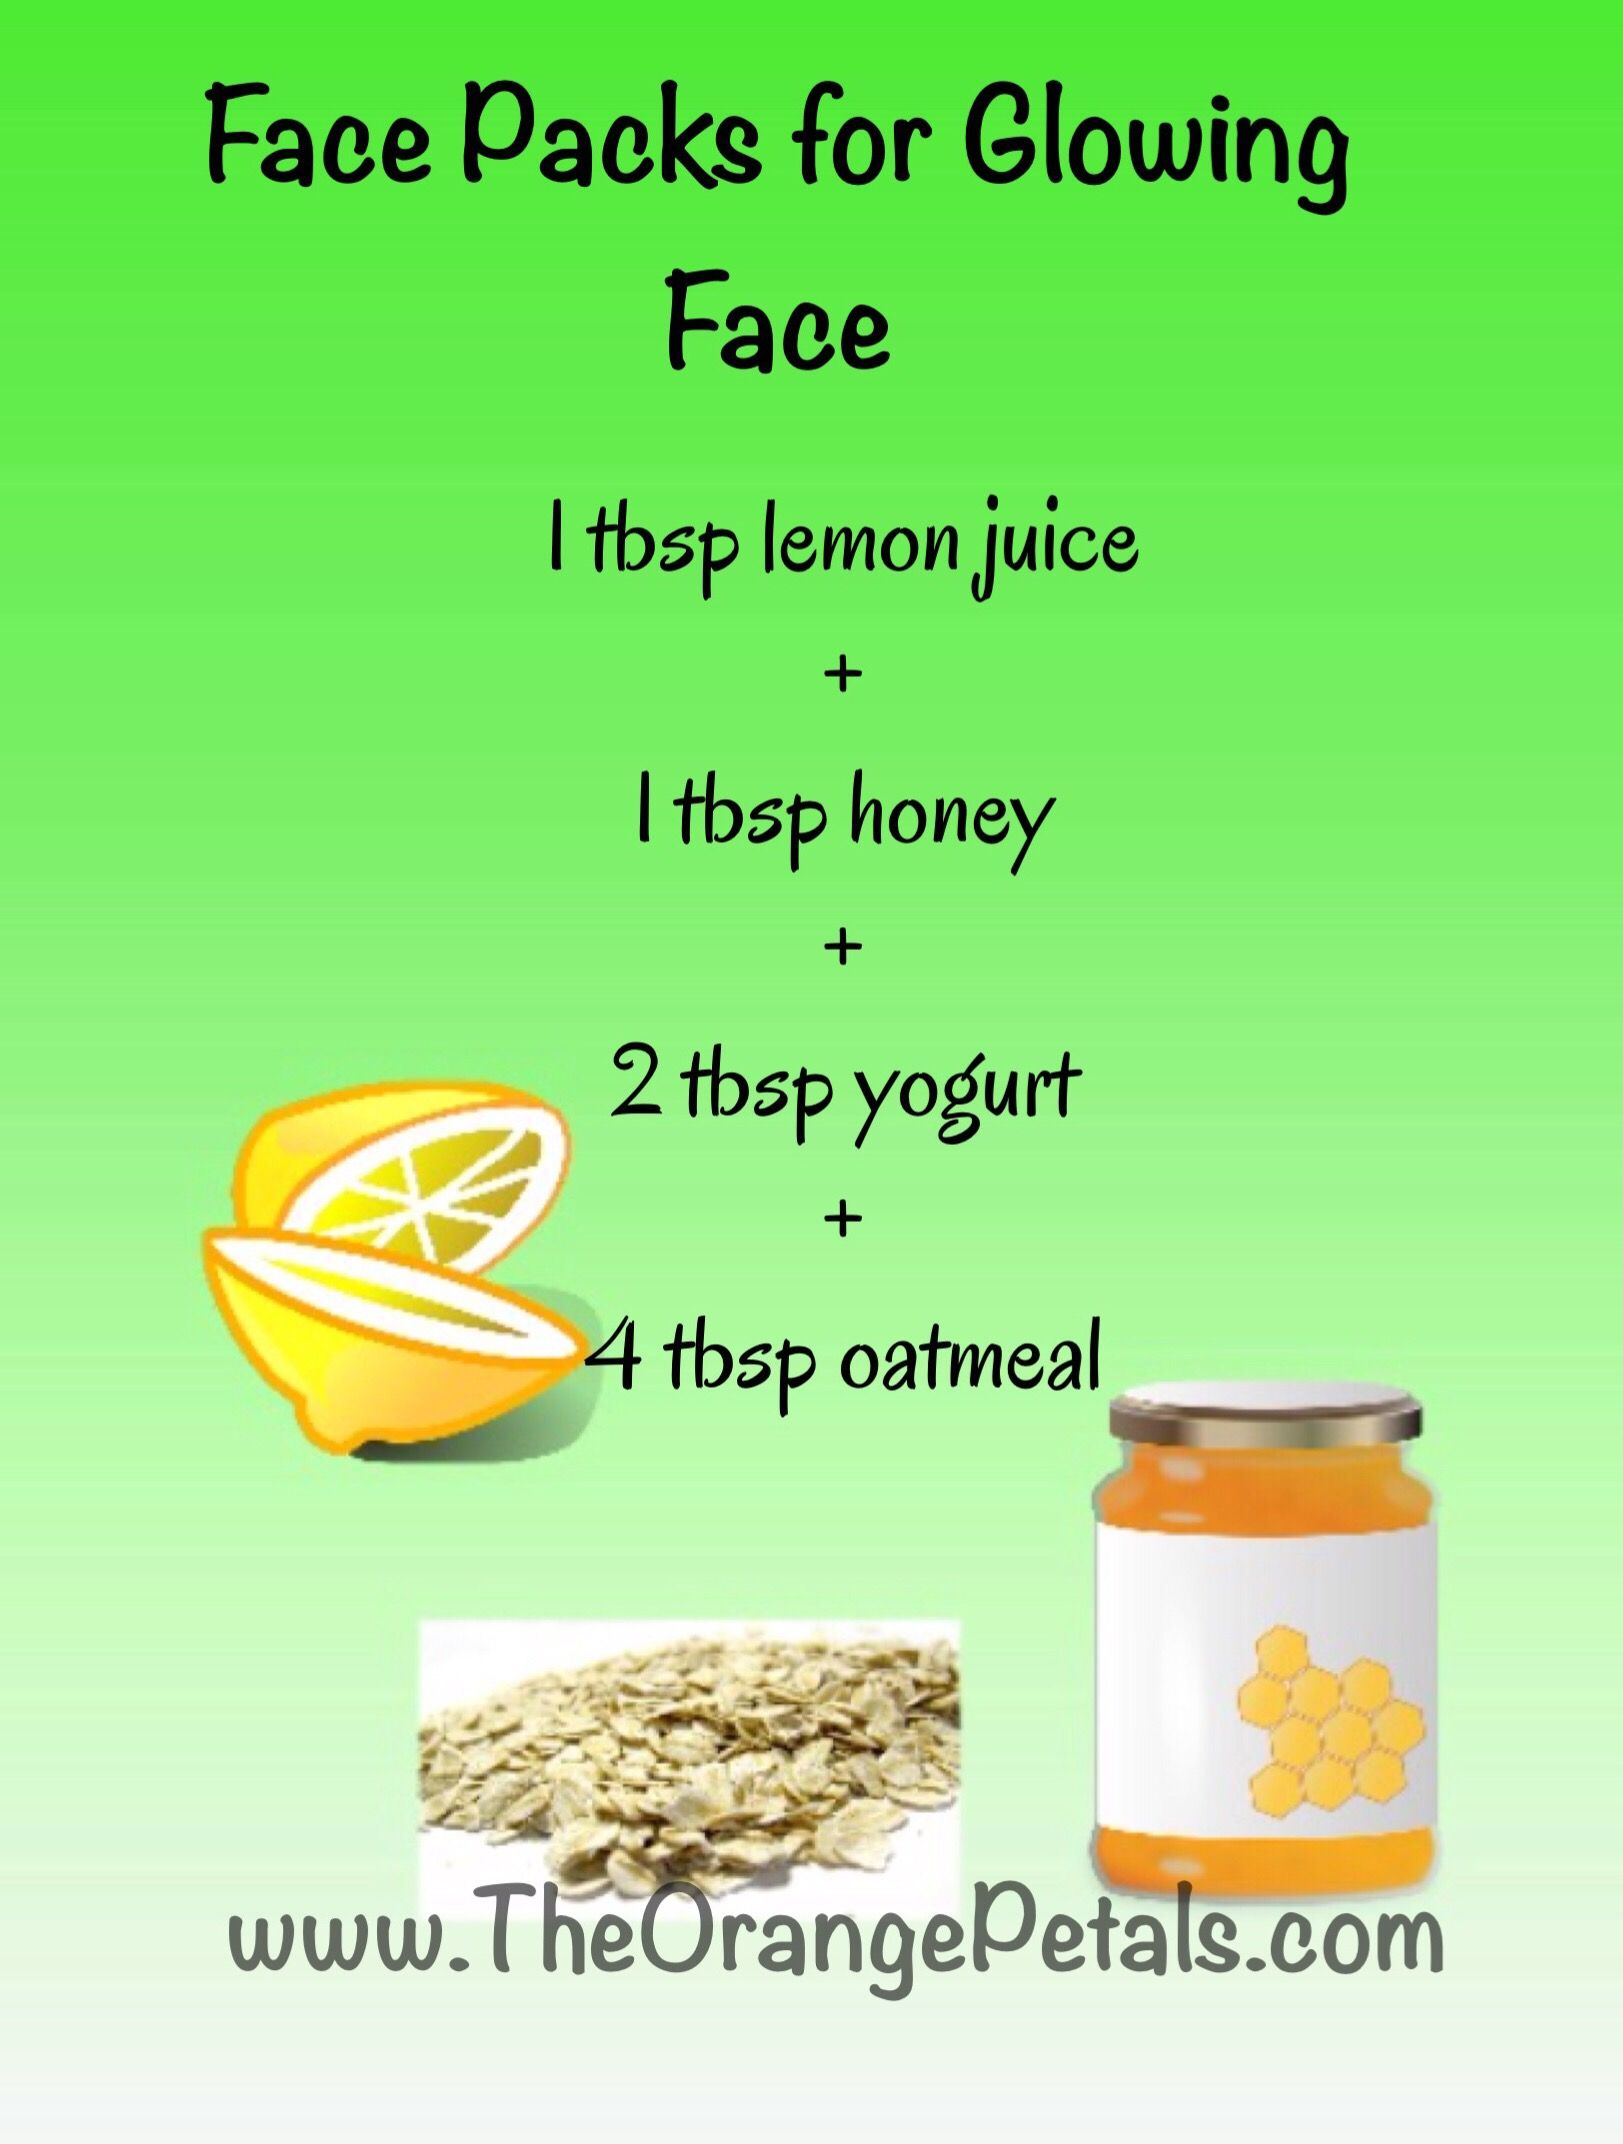 Face Packs for glowing Face - Page 112 of 112 - theorangepetals